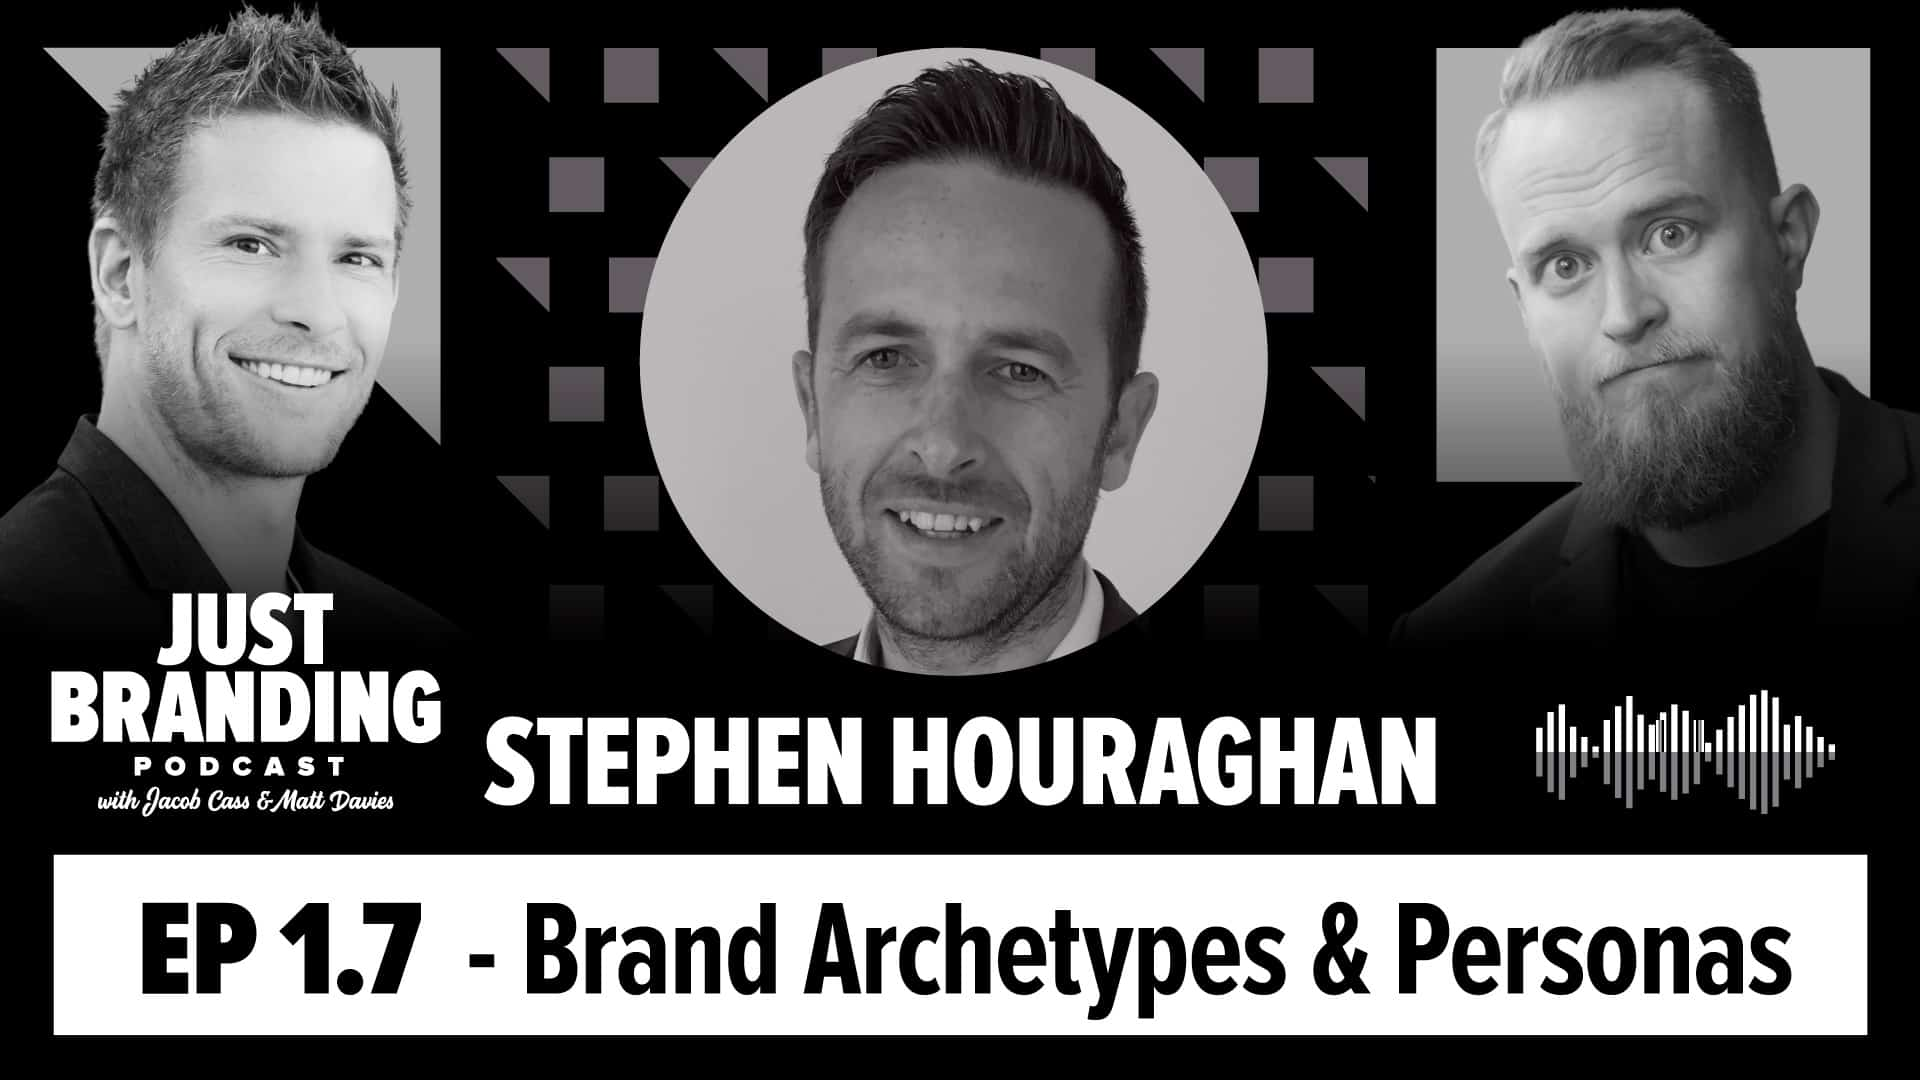 Brand Archetypes & Personas with Stephen Houraghan - JUST Branding Podcast